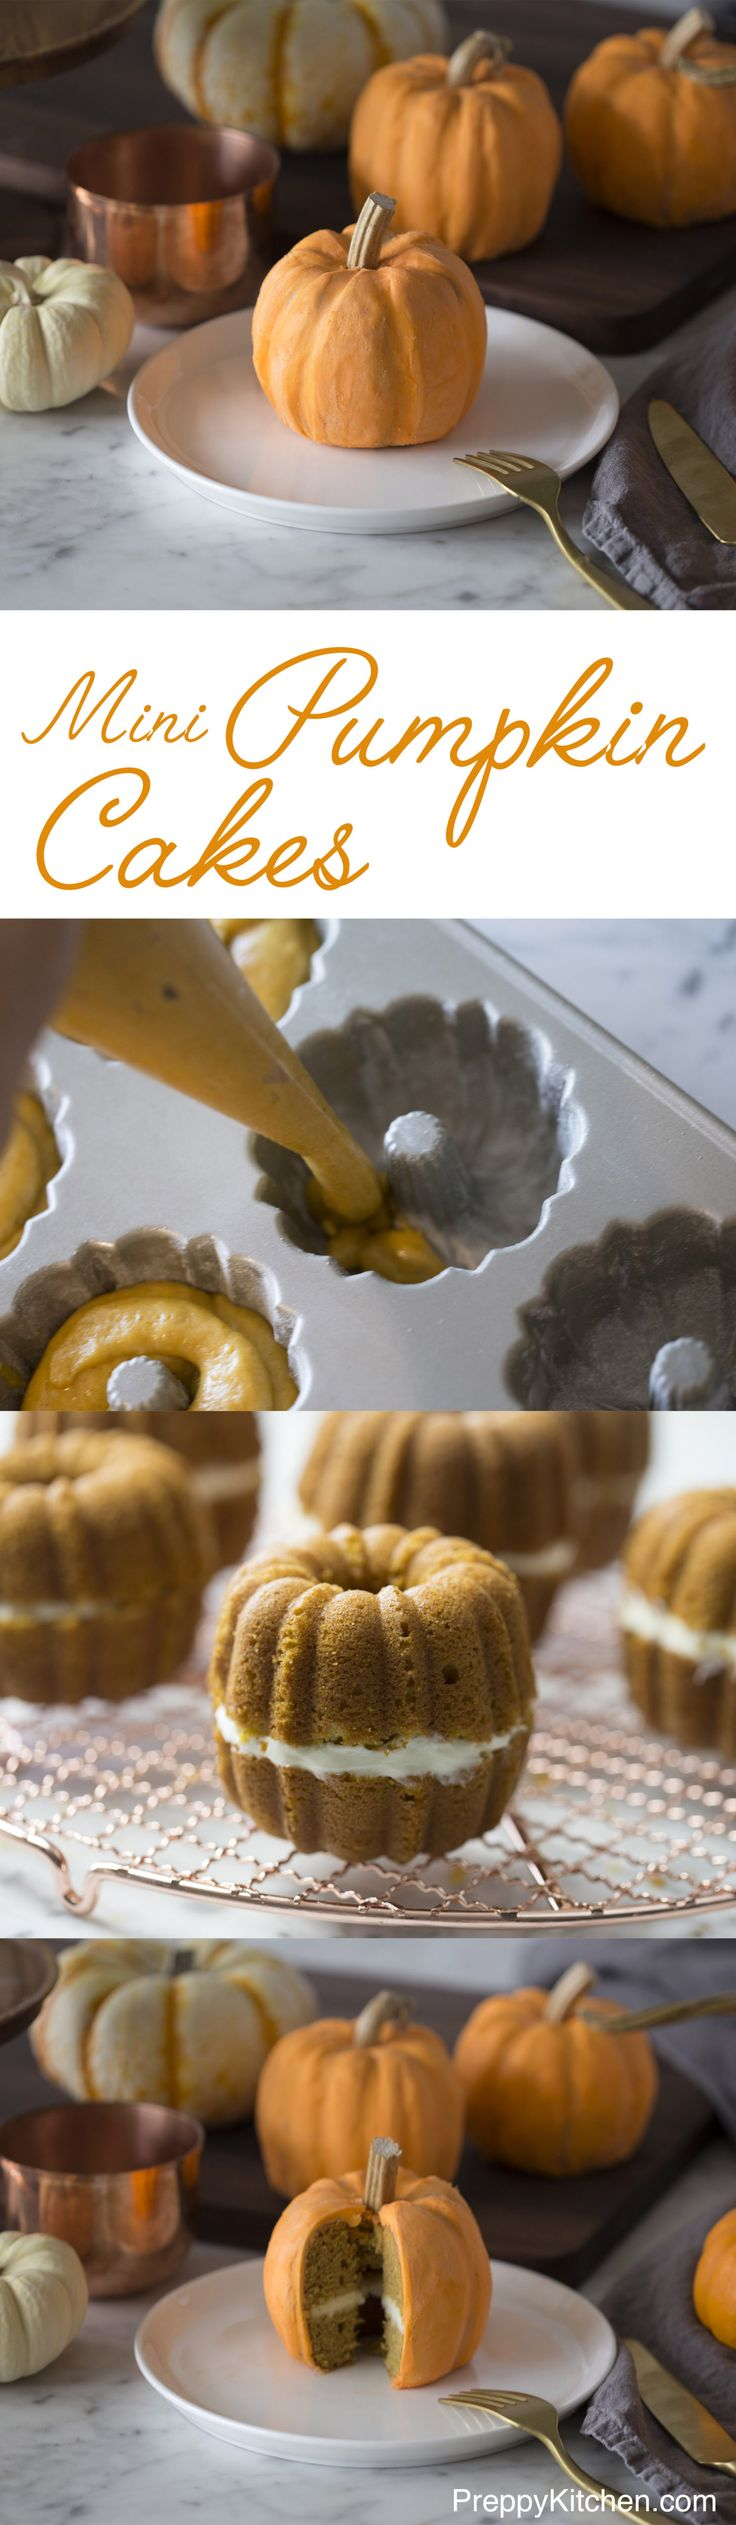 What could be cuter than some trompe l'oeil mini pumpkin cakes? The cakes are moist and full of Fall spices, which are nicely complimented by the cream cheese frosting in the middle and buttercream outside. Click over for recipe and video. via @preppykitchen